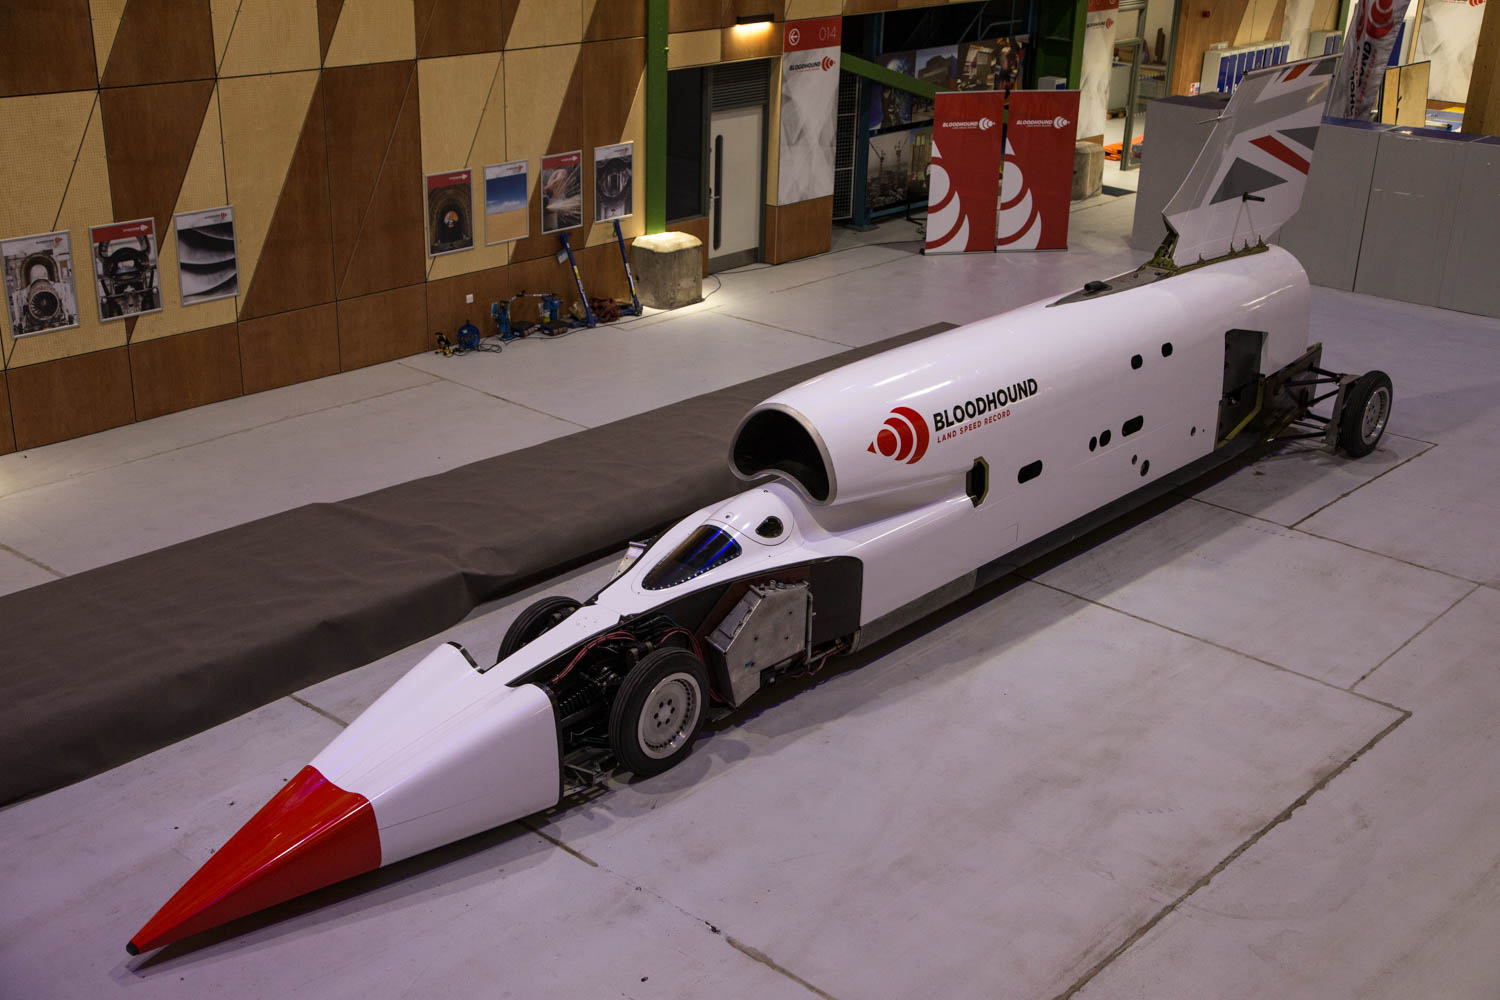 The Bloodhound land speeder is back, and it's lookin' fine